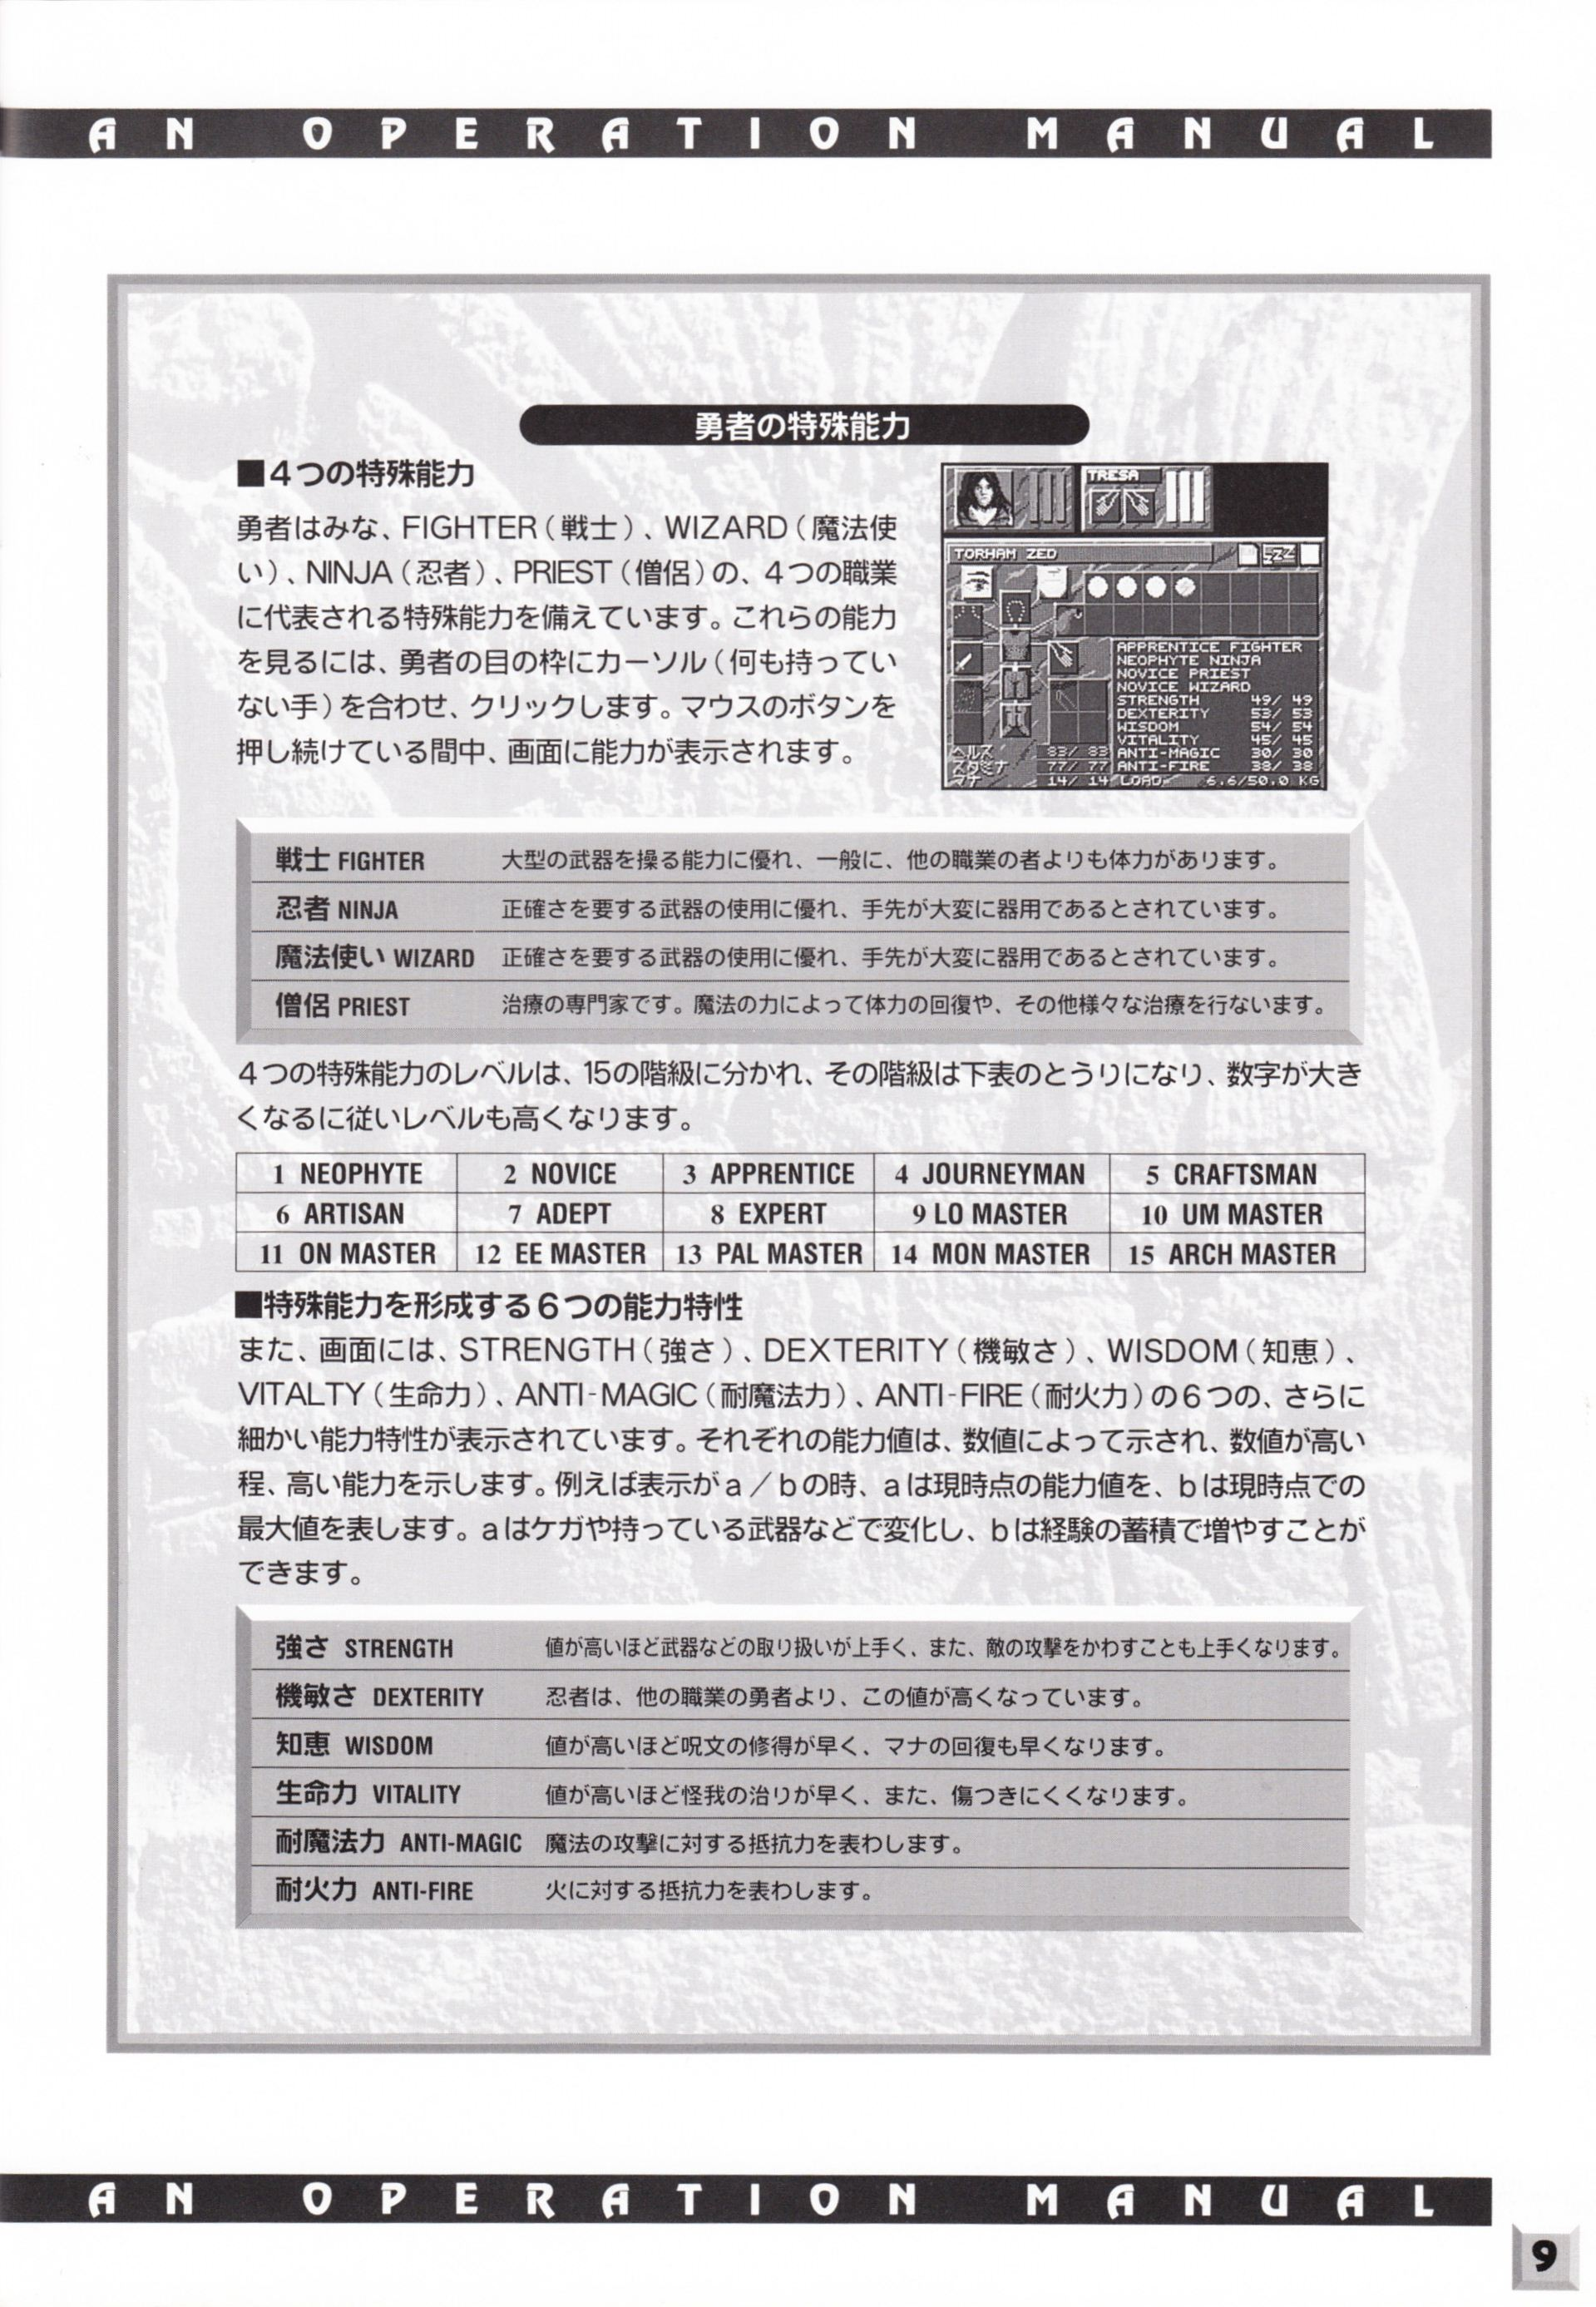 Game - Dungeon Master II - JP - PC-9801 - 3.5-inch - An Operation Manual - Page 011 - Scan